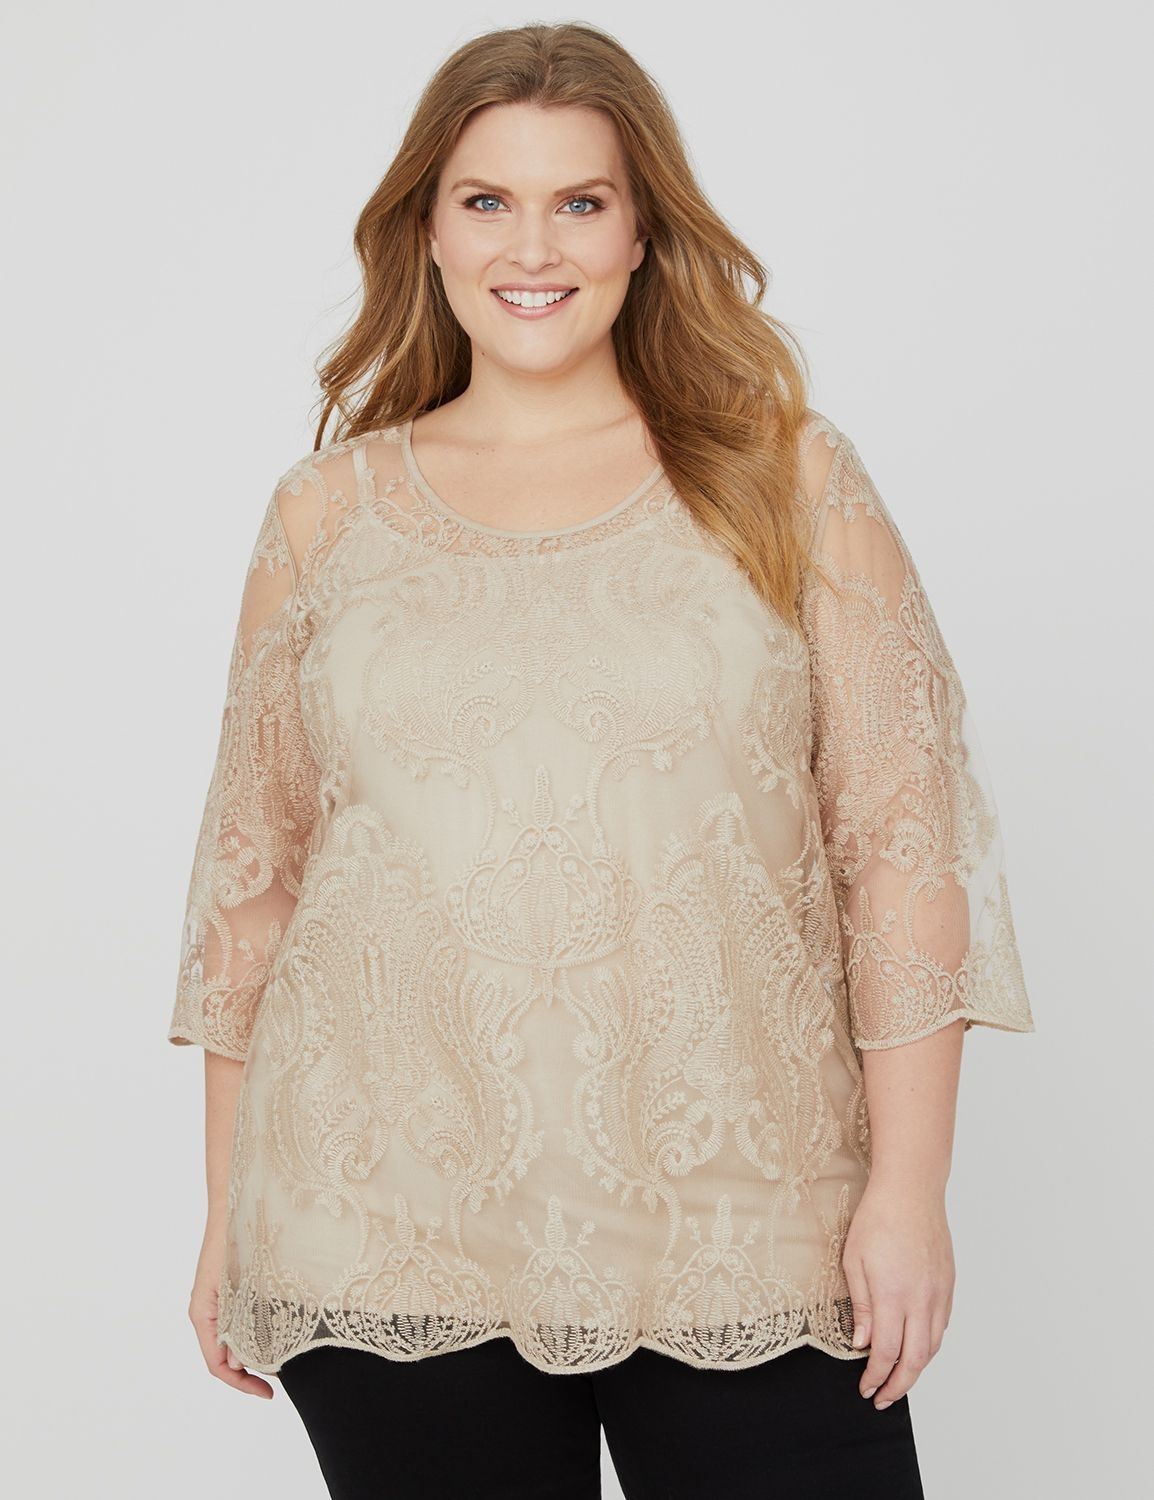 Soft Afterglow Top 1091394 Nuance Mesh Embroidered Tun MP-300103681